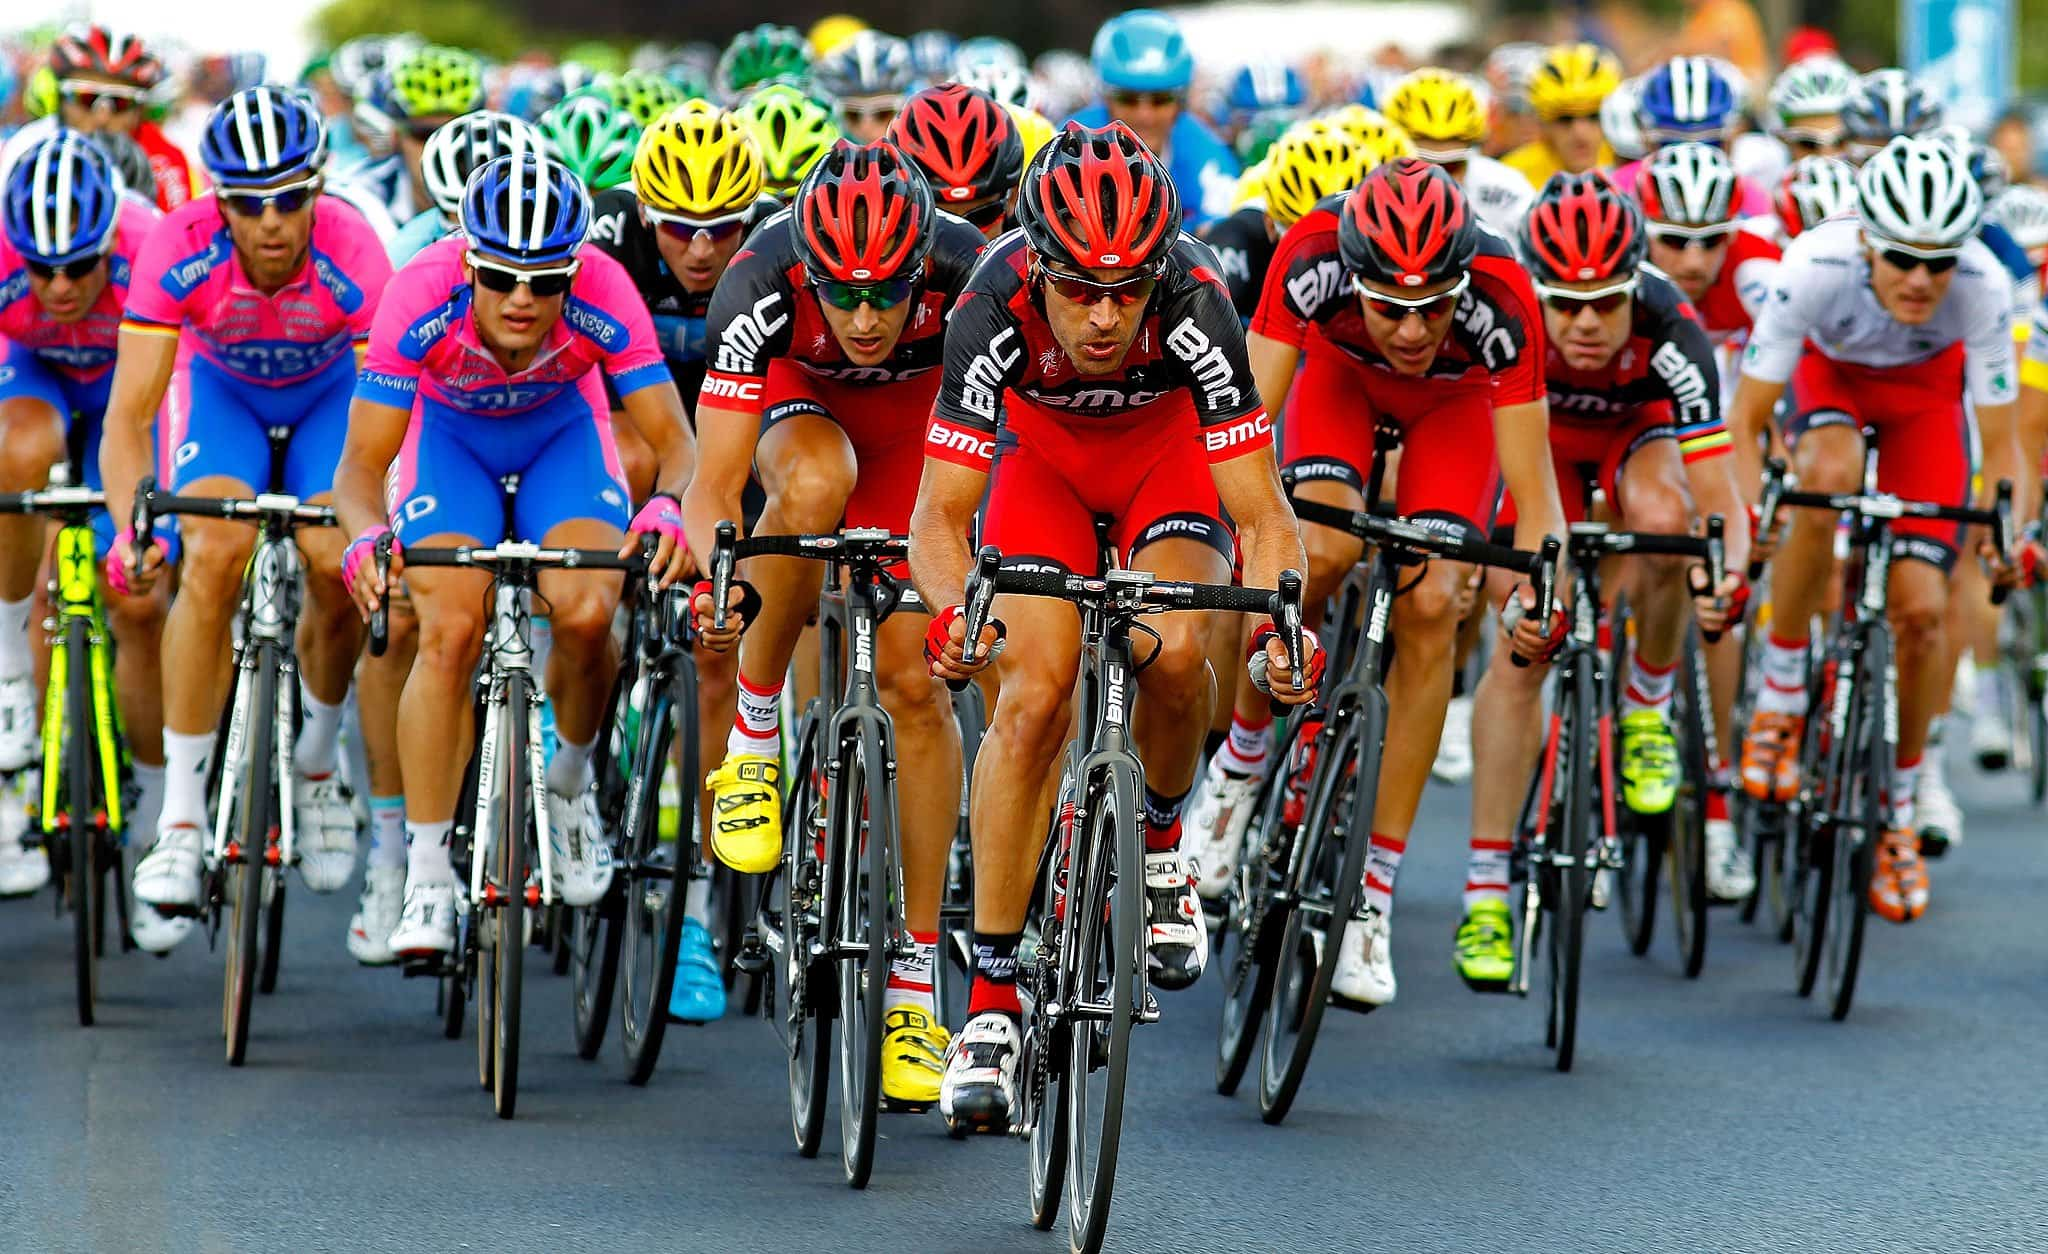 Tour de France Compare Odds to get the best price on your bet.